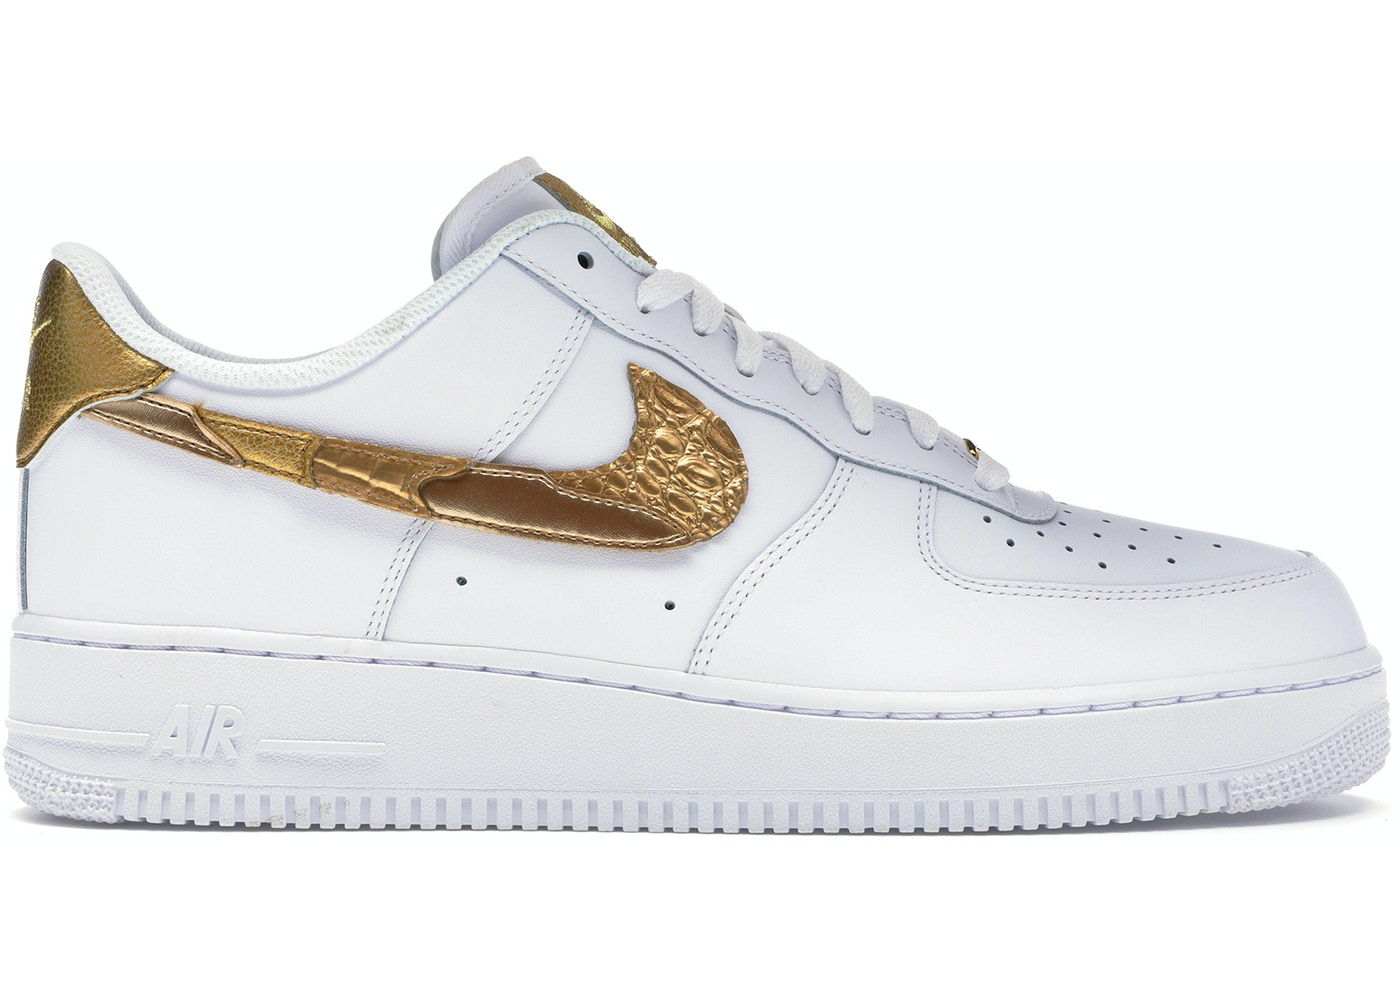 reputable site f9be5 54868 Air Force 1 Low CR7 Golden Patchwork - AQ0666-100